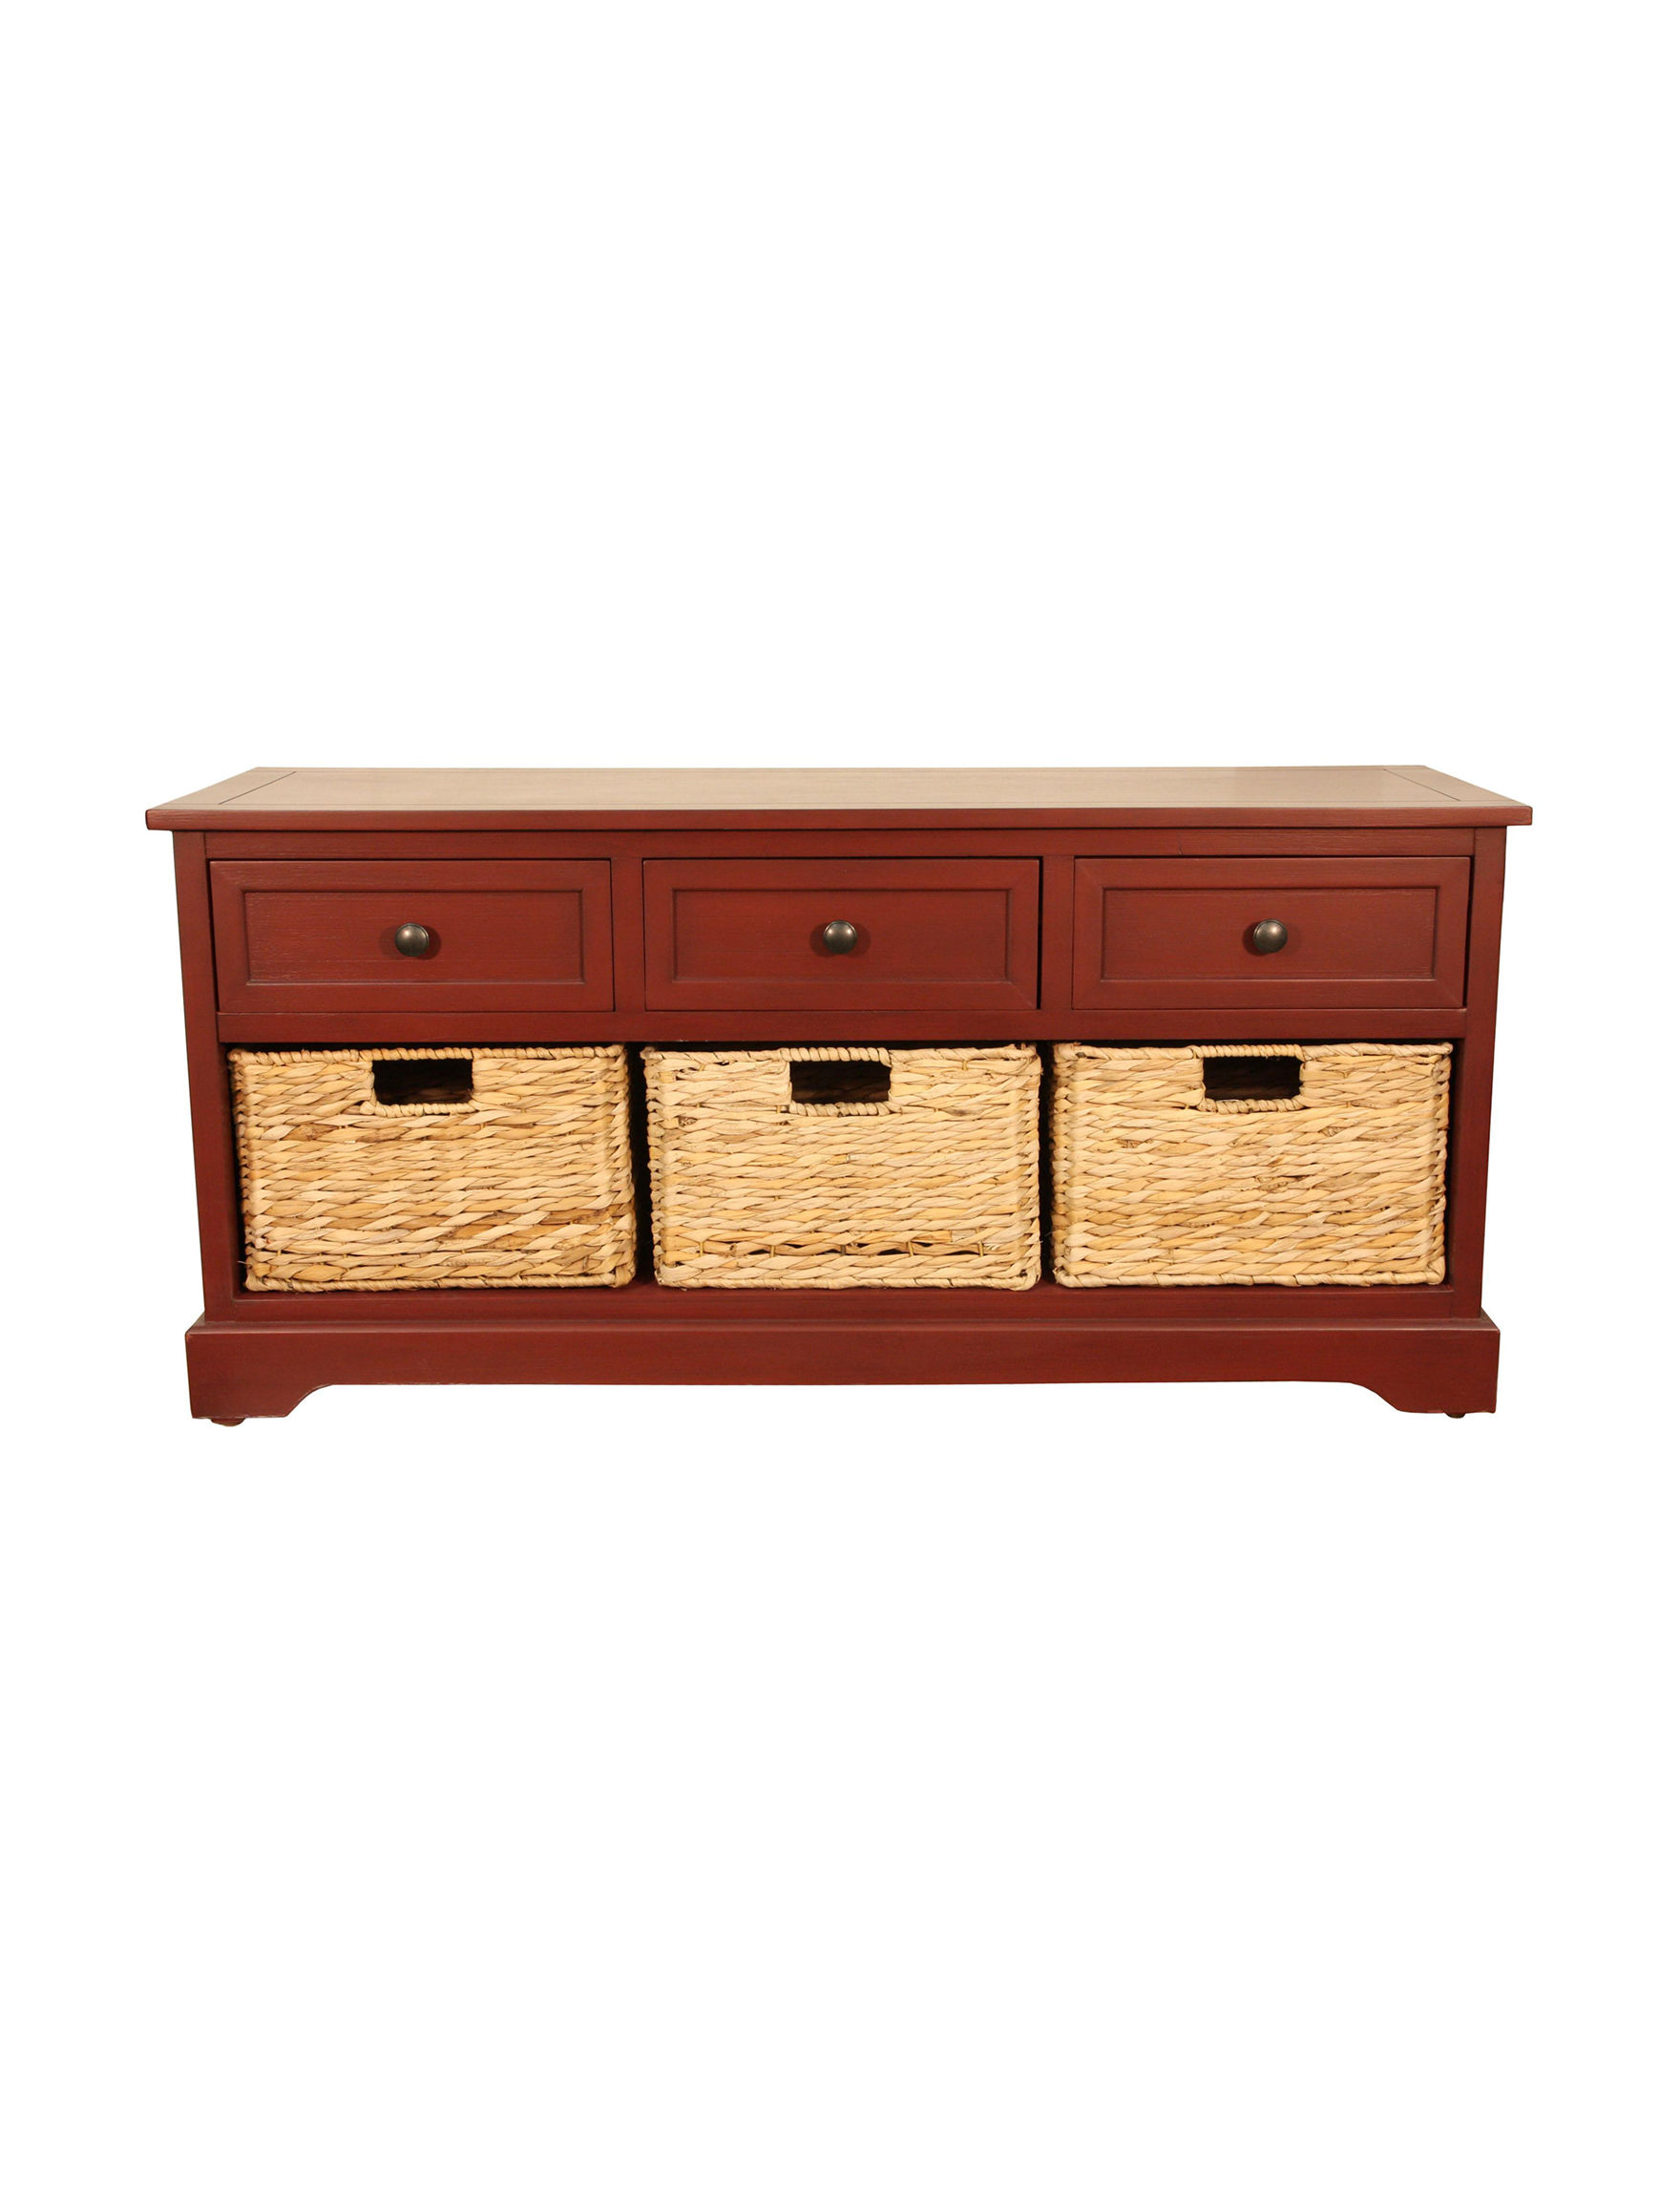 Decor Therapy Red Ottomans & Benches Bedroom Furniture Entryway Furniture Home Office Furniture Living Room Furniture